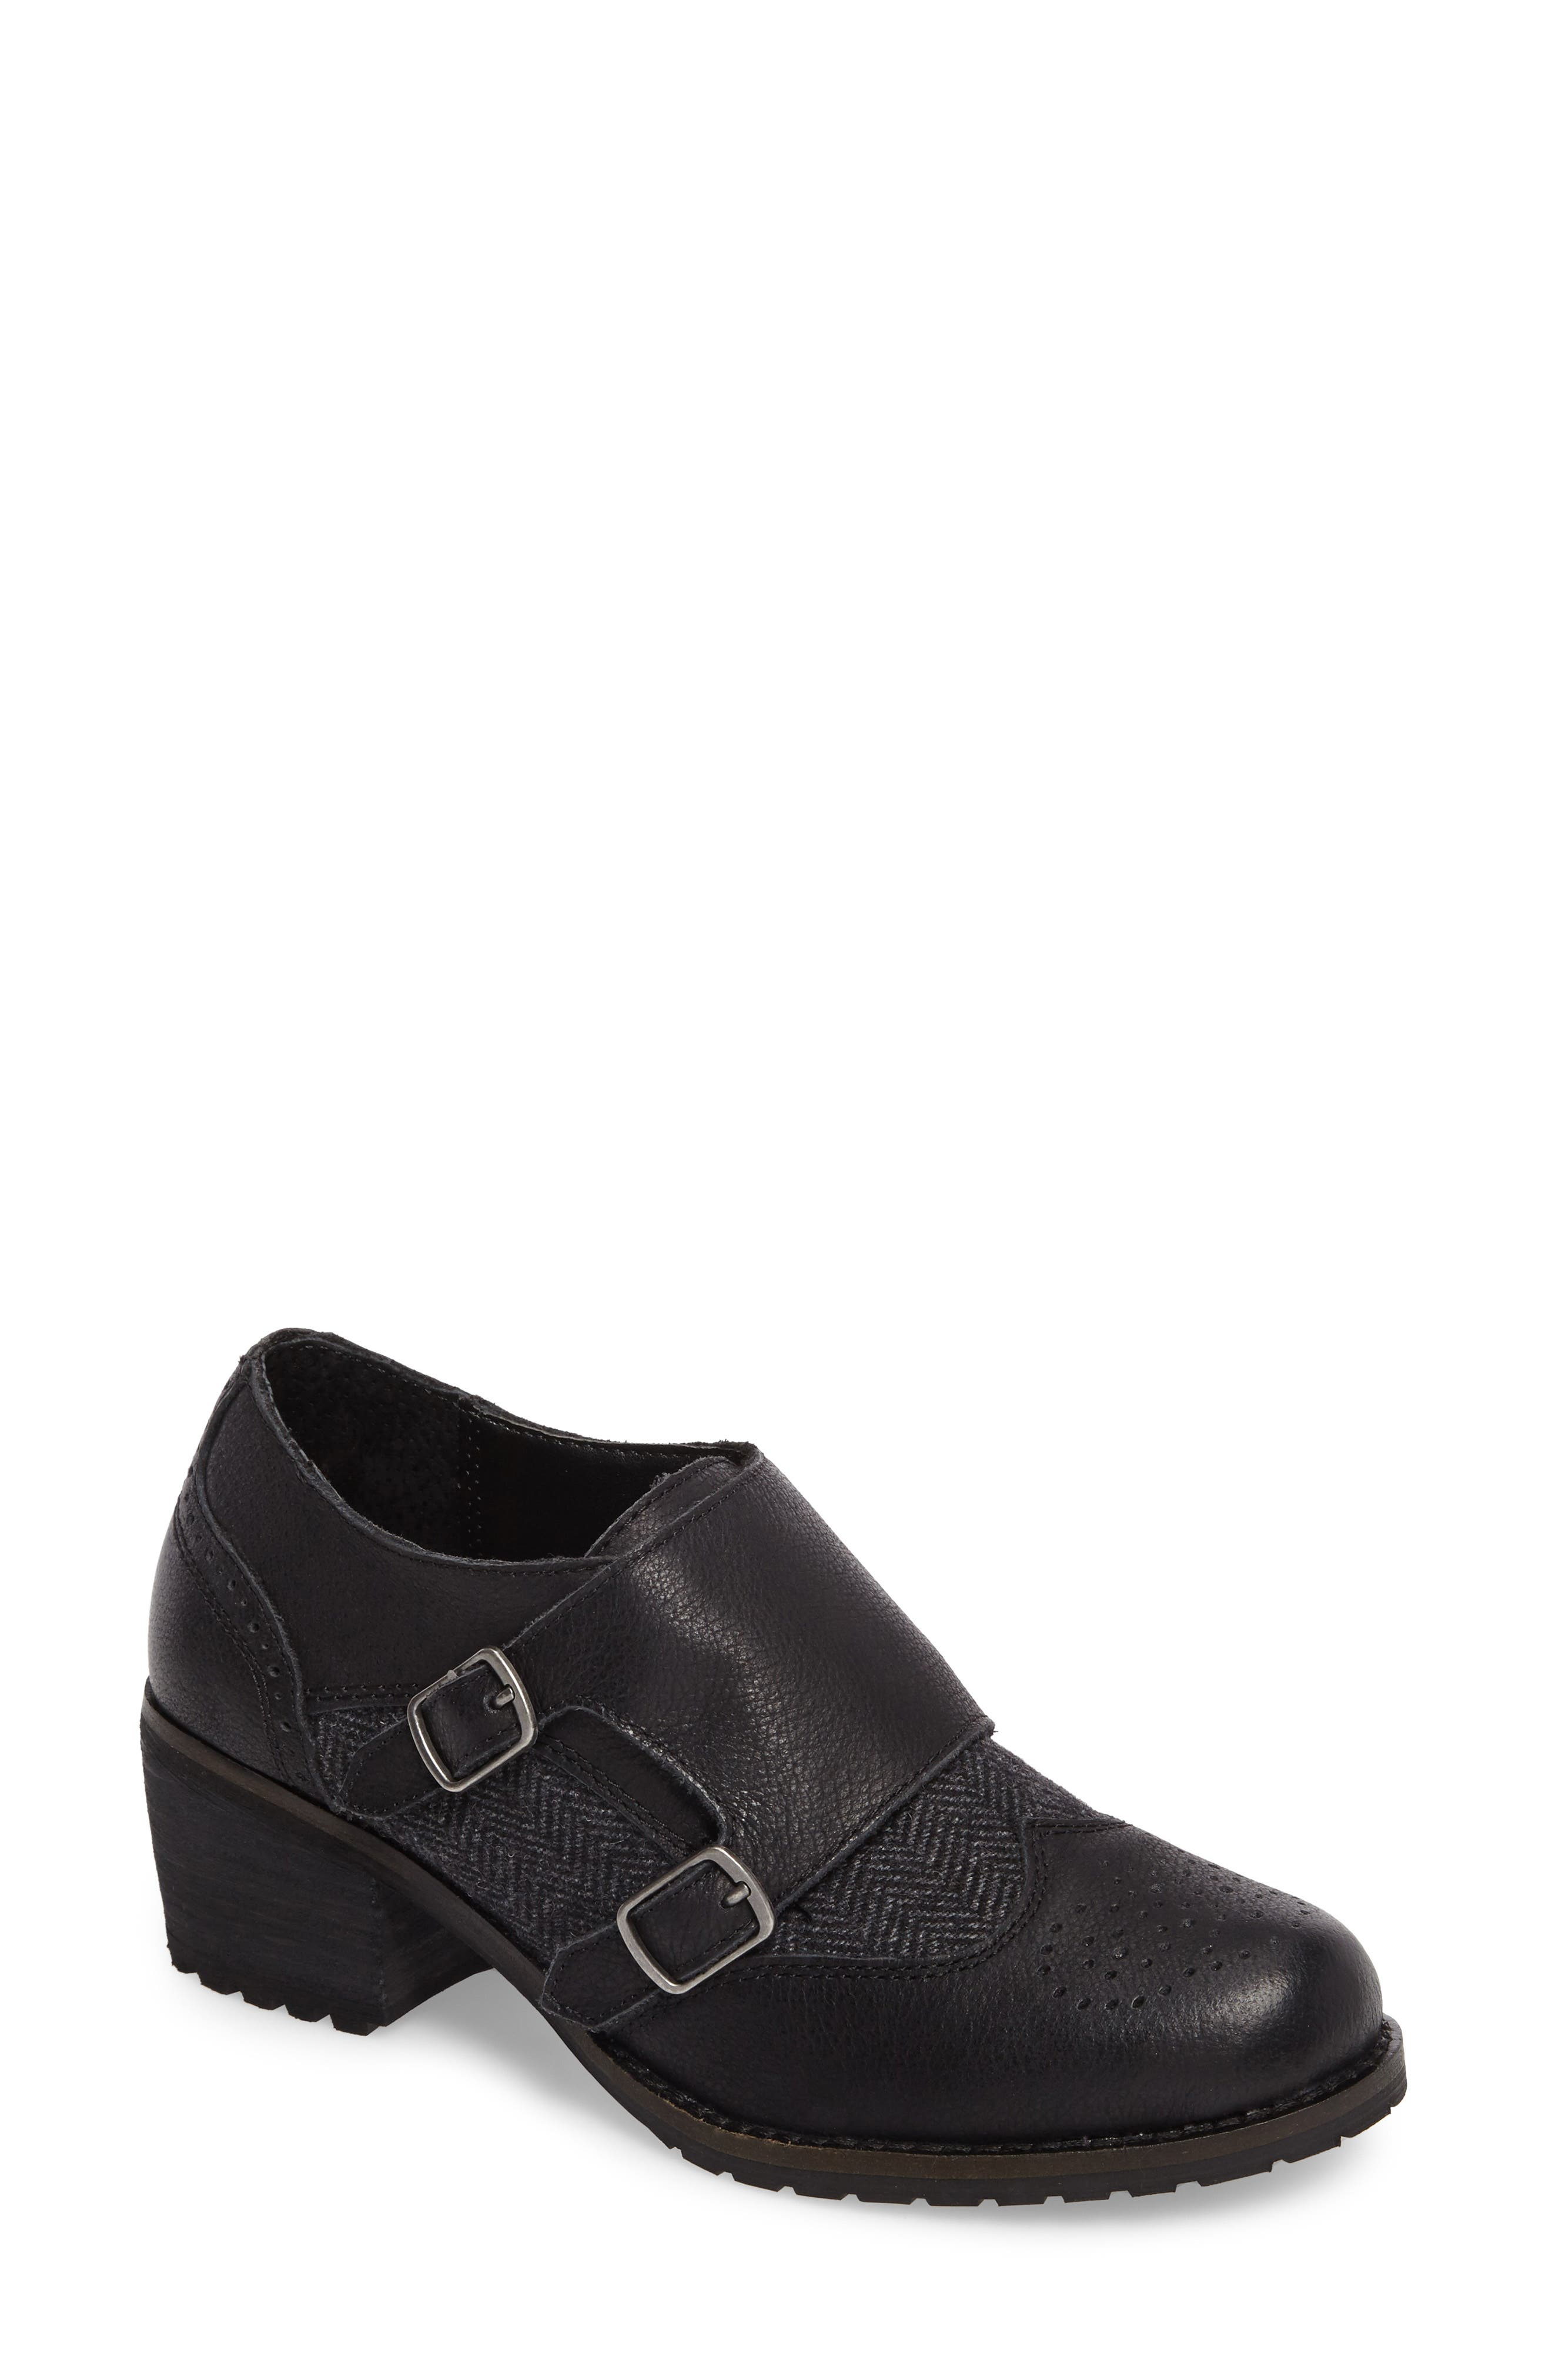 Dina Double Monk Strap Ankle Boot,                             Main thumbnail 1, color,                             BLACK LEATHER